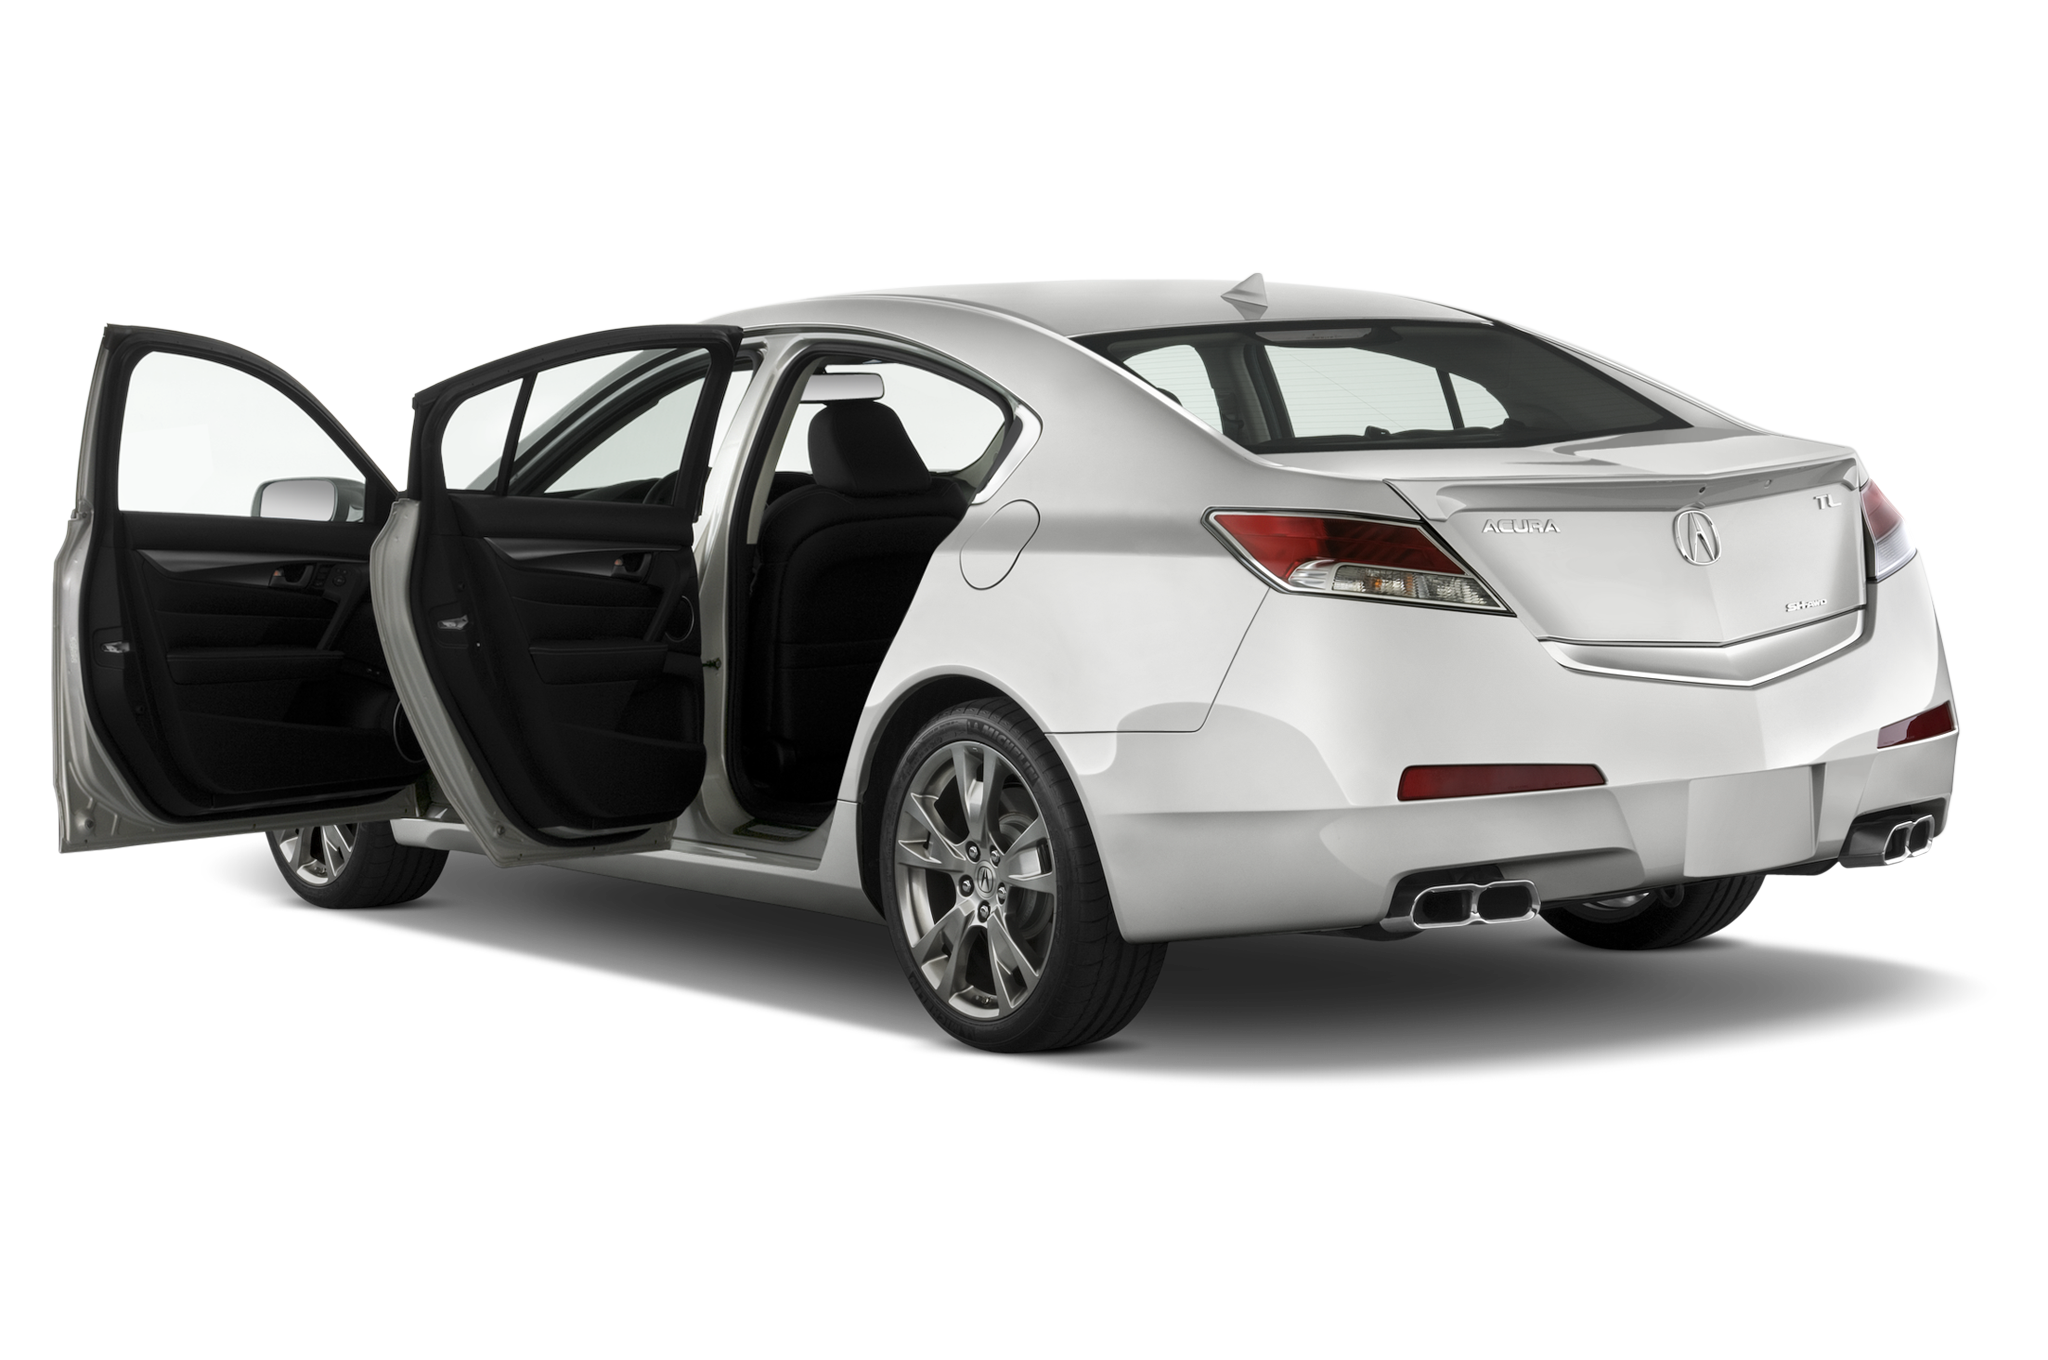 Canadian Specific Acura Launches TL ASpec Model For Canada - 2018 acura tl 19 inch wheels